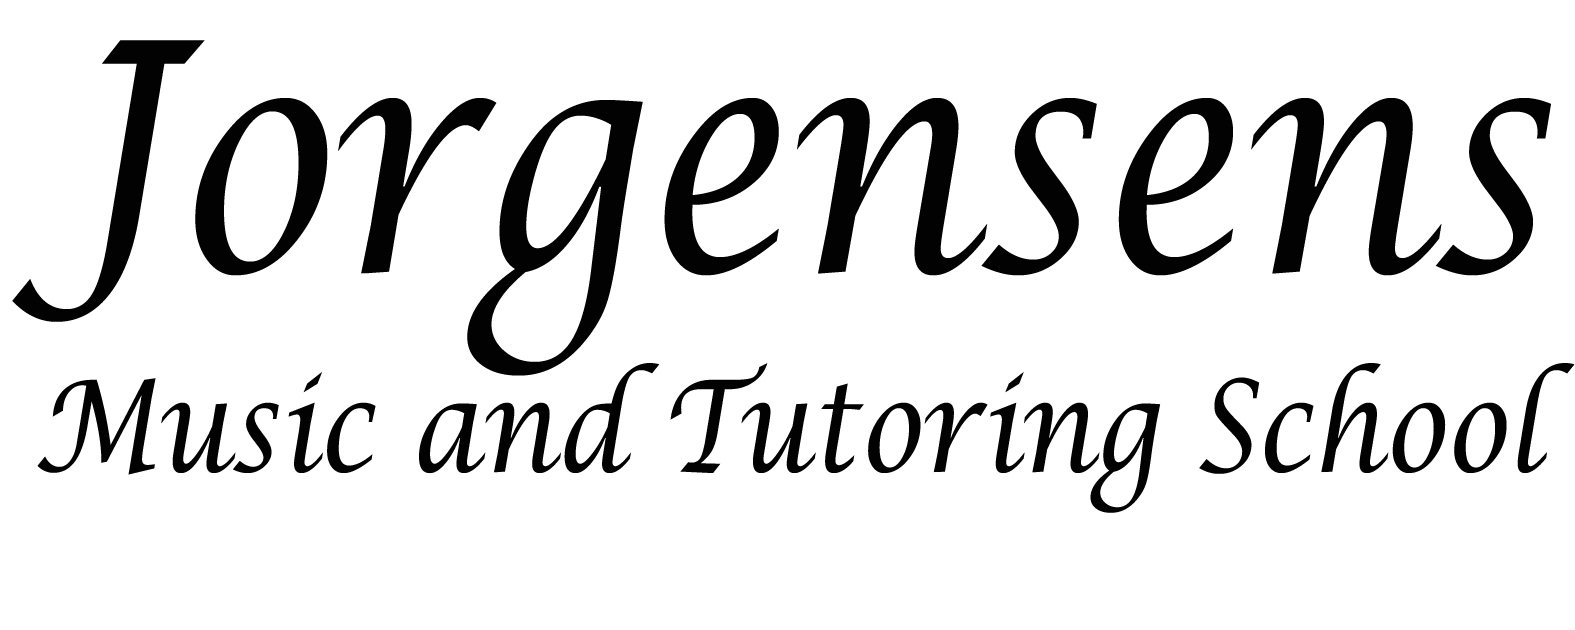 Sponsored by Jorgensens Music and Tutoring School